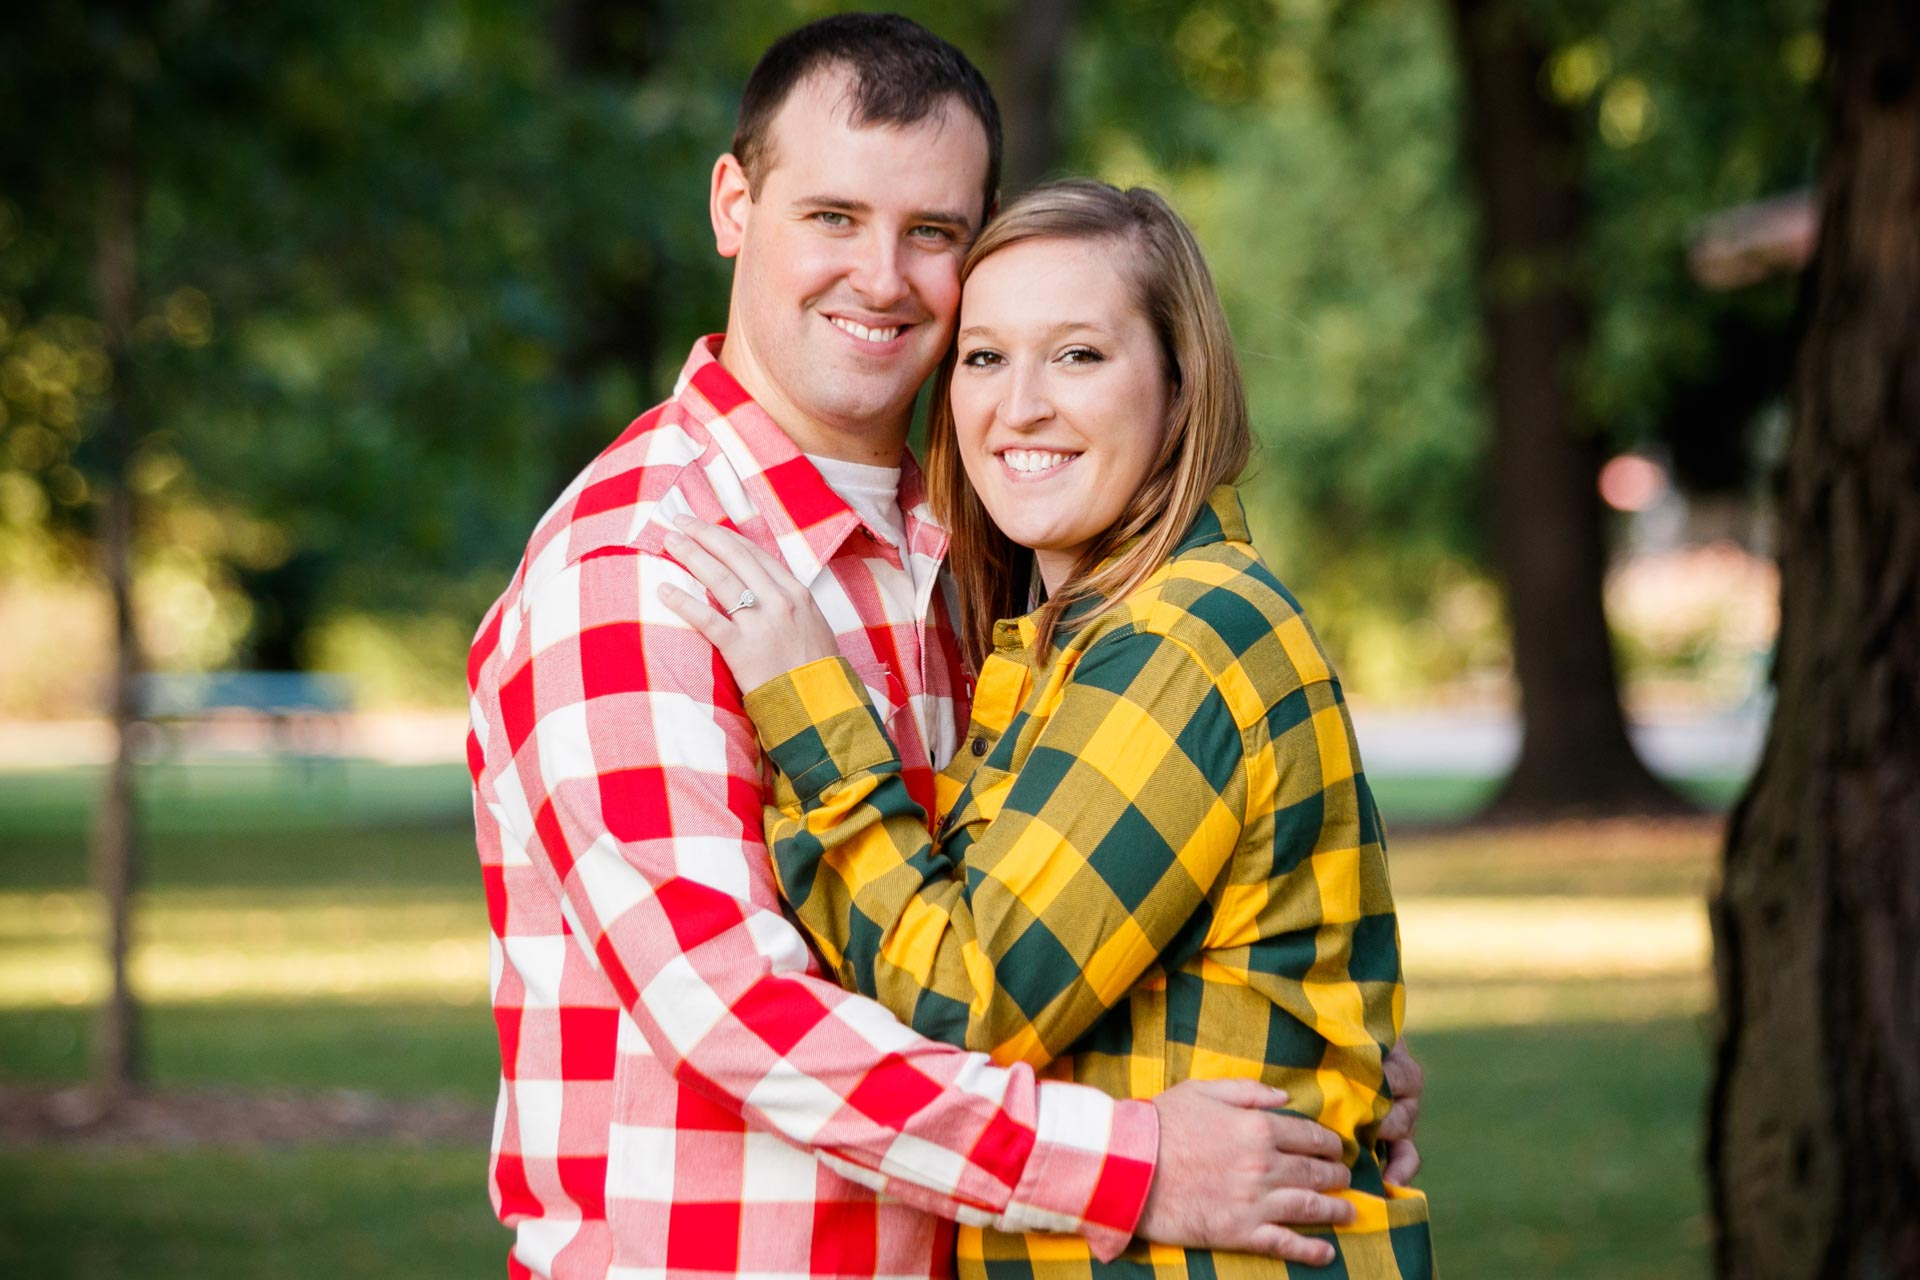 engagement-photos-riverside-park-neenah-adam-shea-photography-green-bay-appleton-neenah-photographer-13.jpg